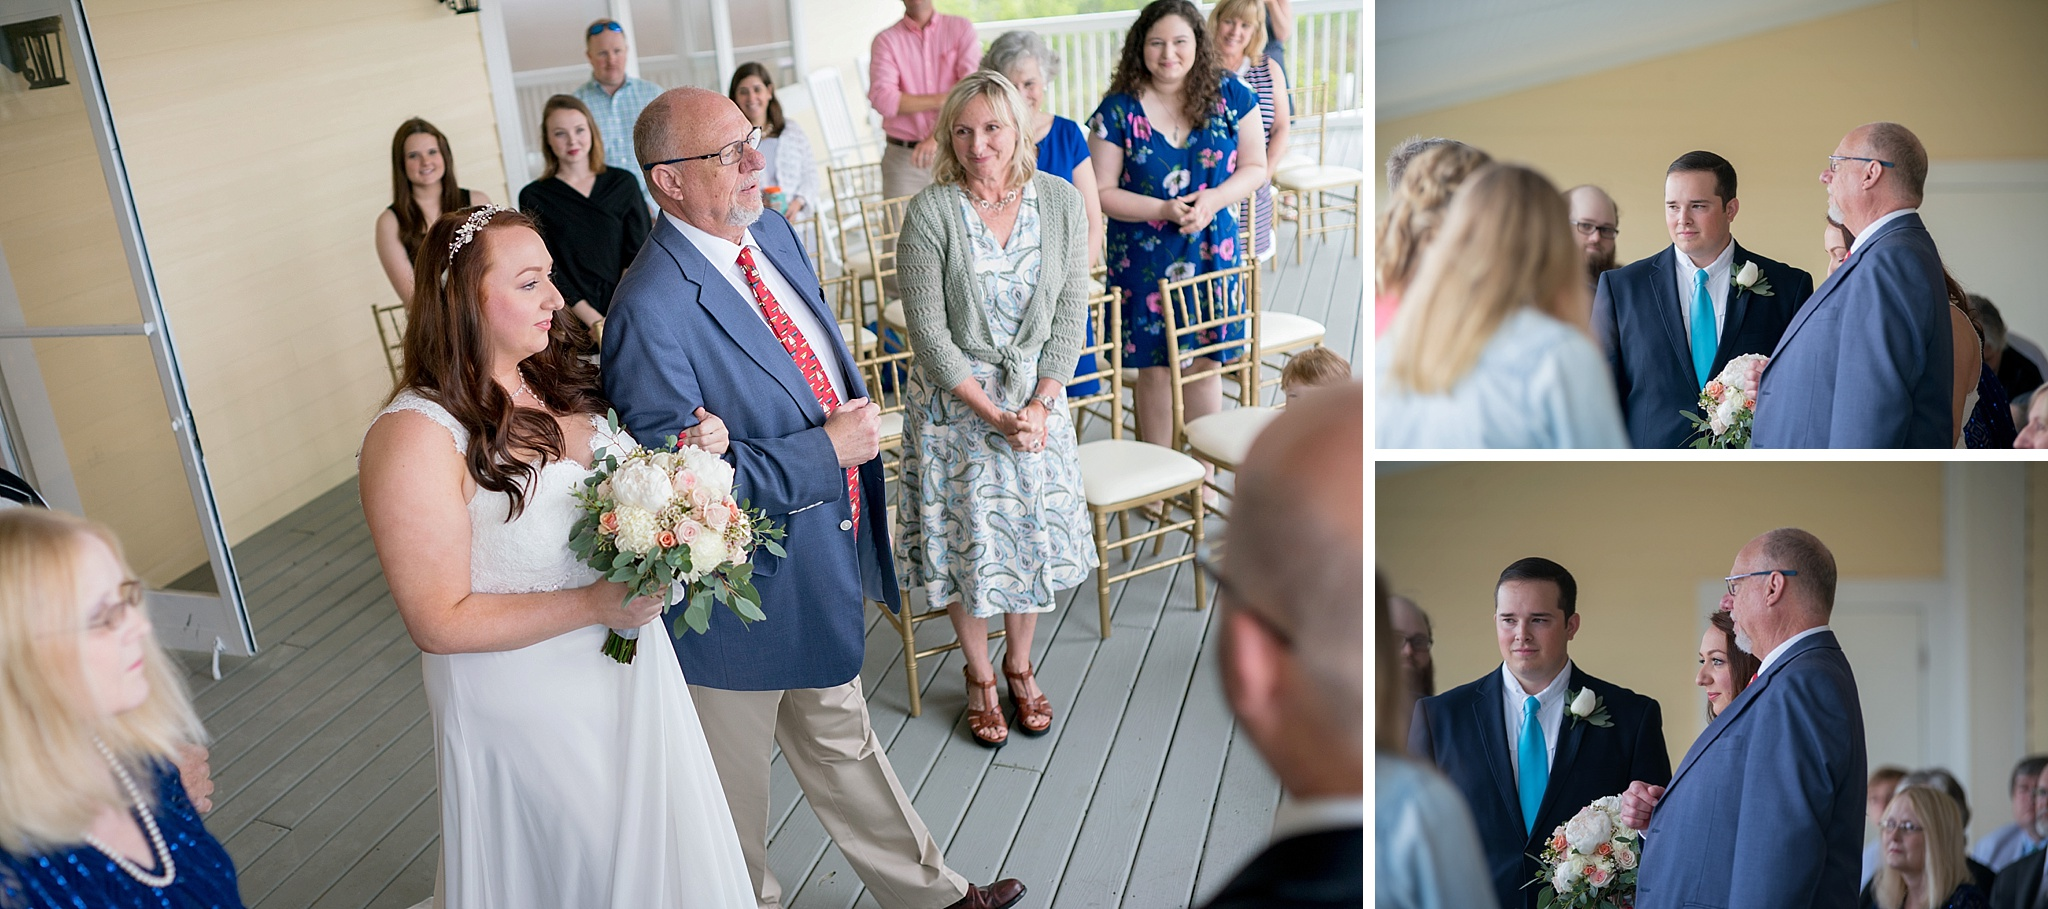 Manteo-NC-Wedding-Photographer-115.jpg